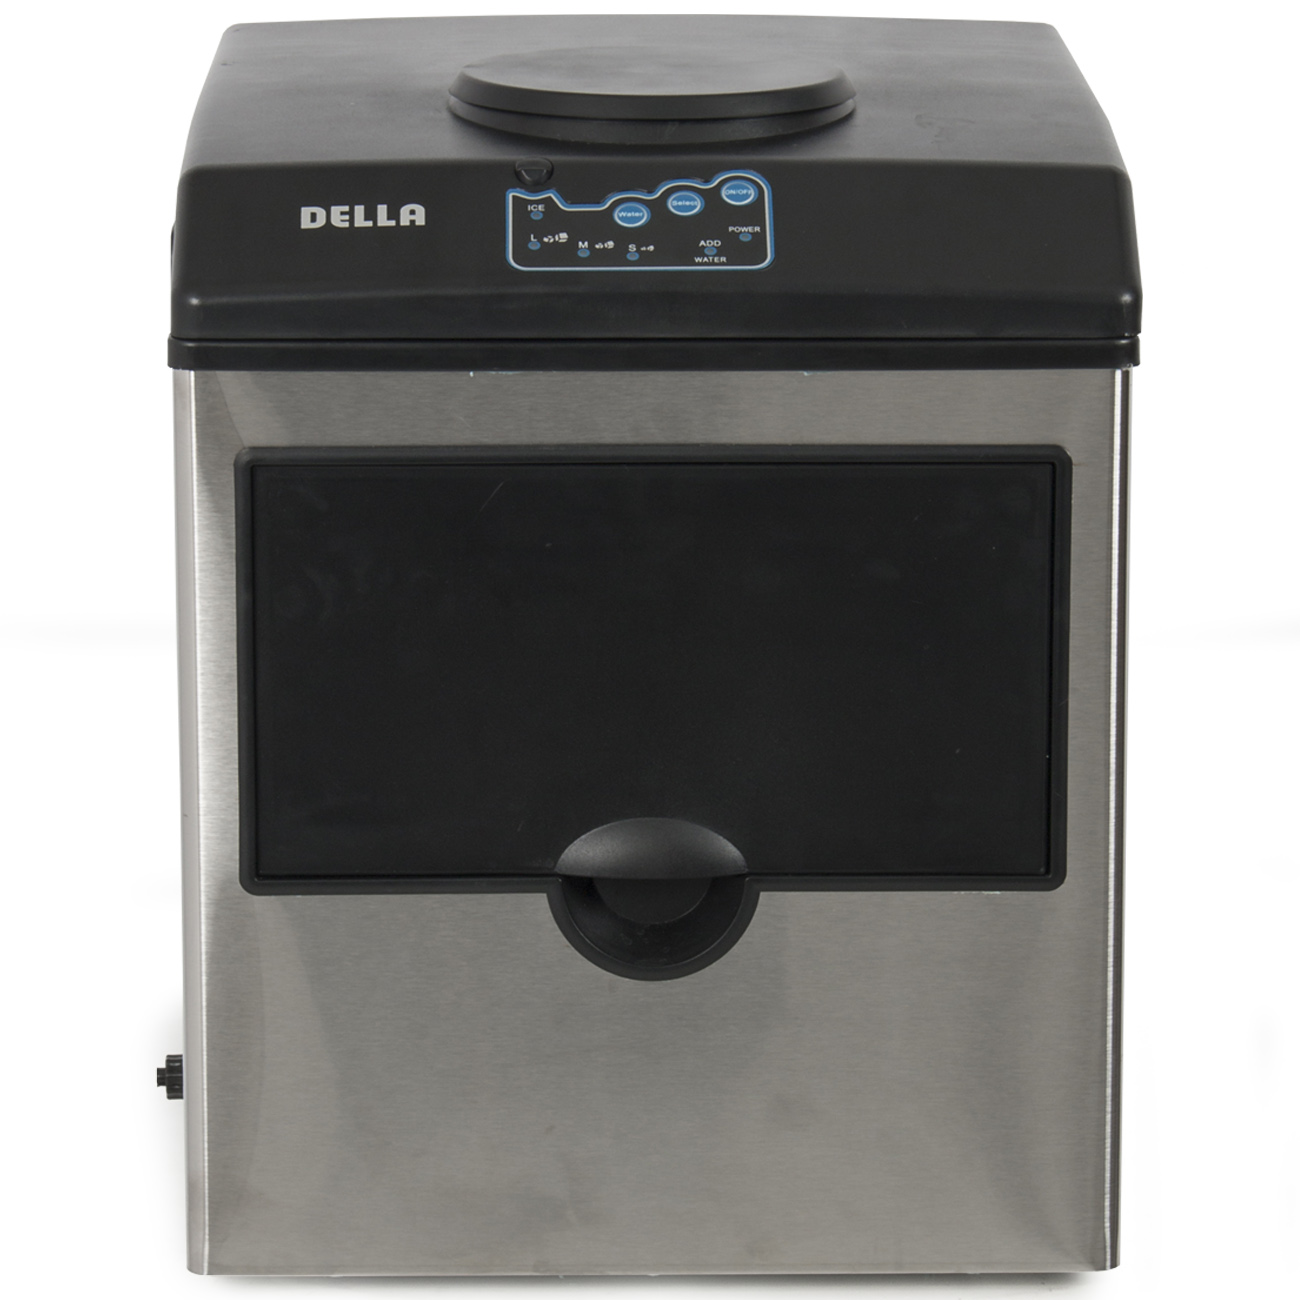 portable ice maker with water hookup Relax with an endless supply of ice from your own ice maker shop our wide selection of ice makers and tankless water heaters wish you had a portable ice maker.